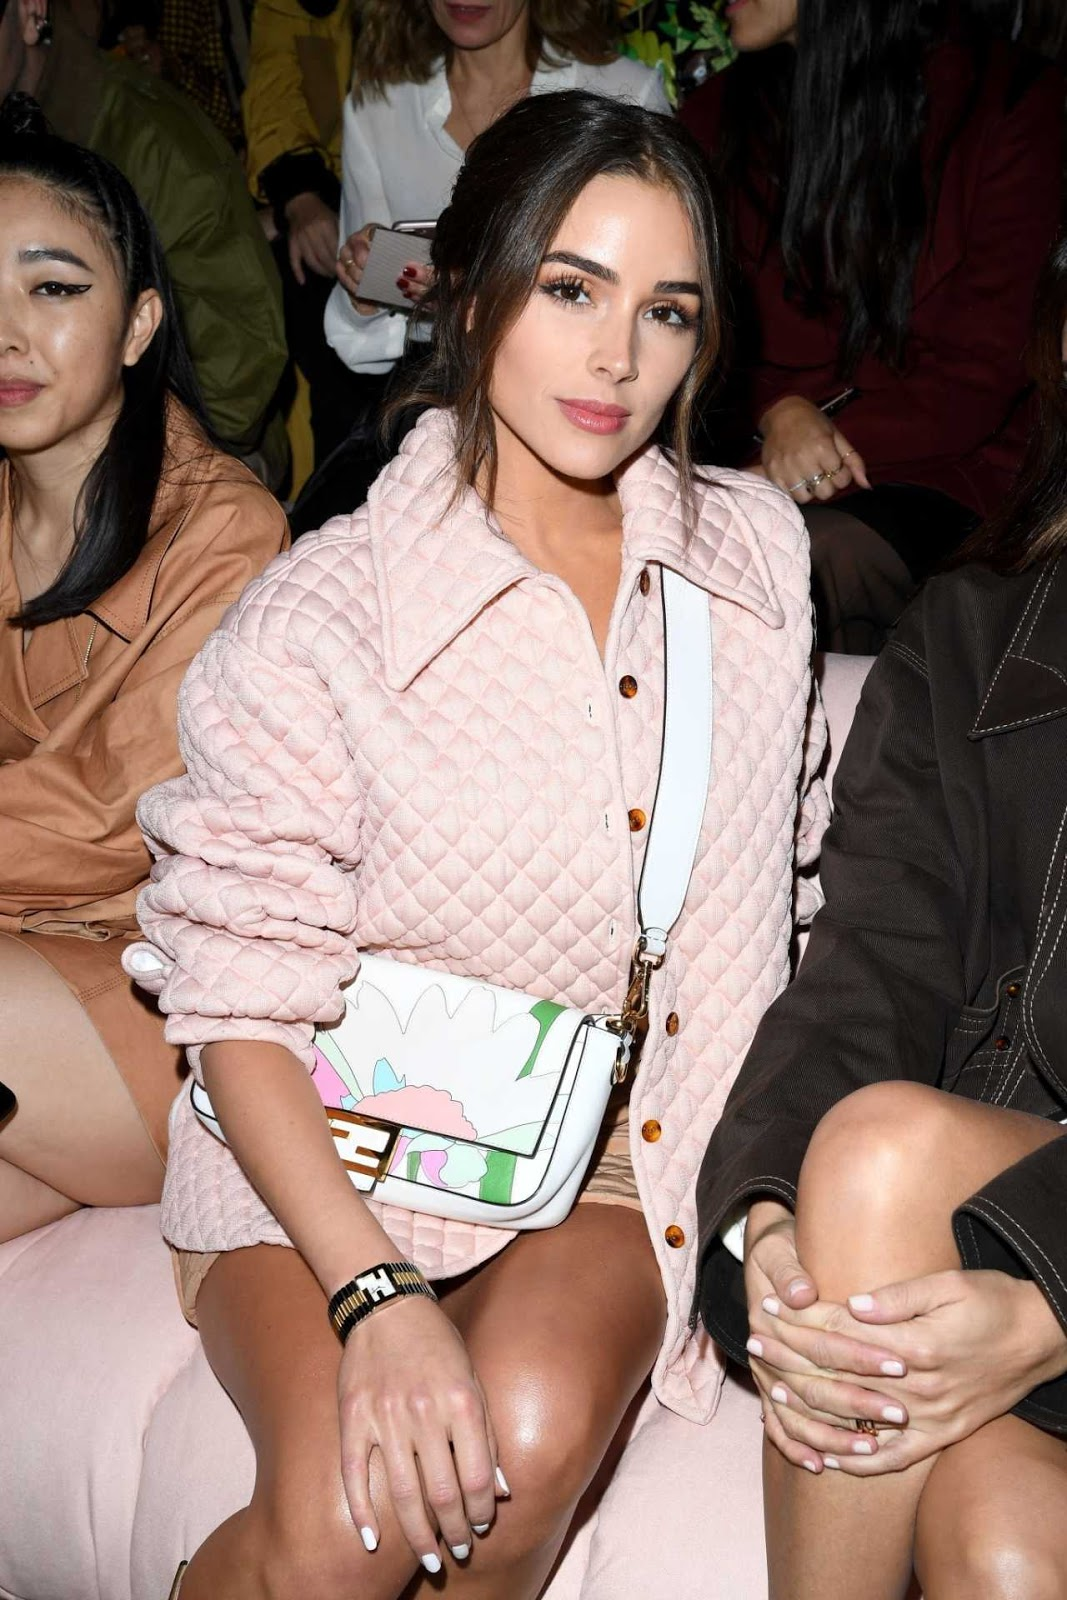 Olivia Culpo Looks Hot in Awesome Pink Outfit